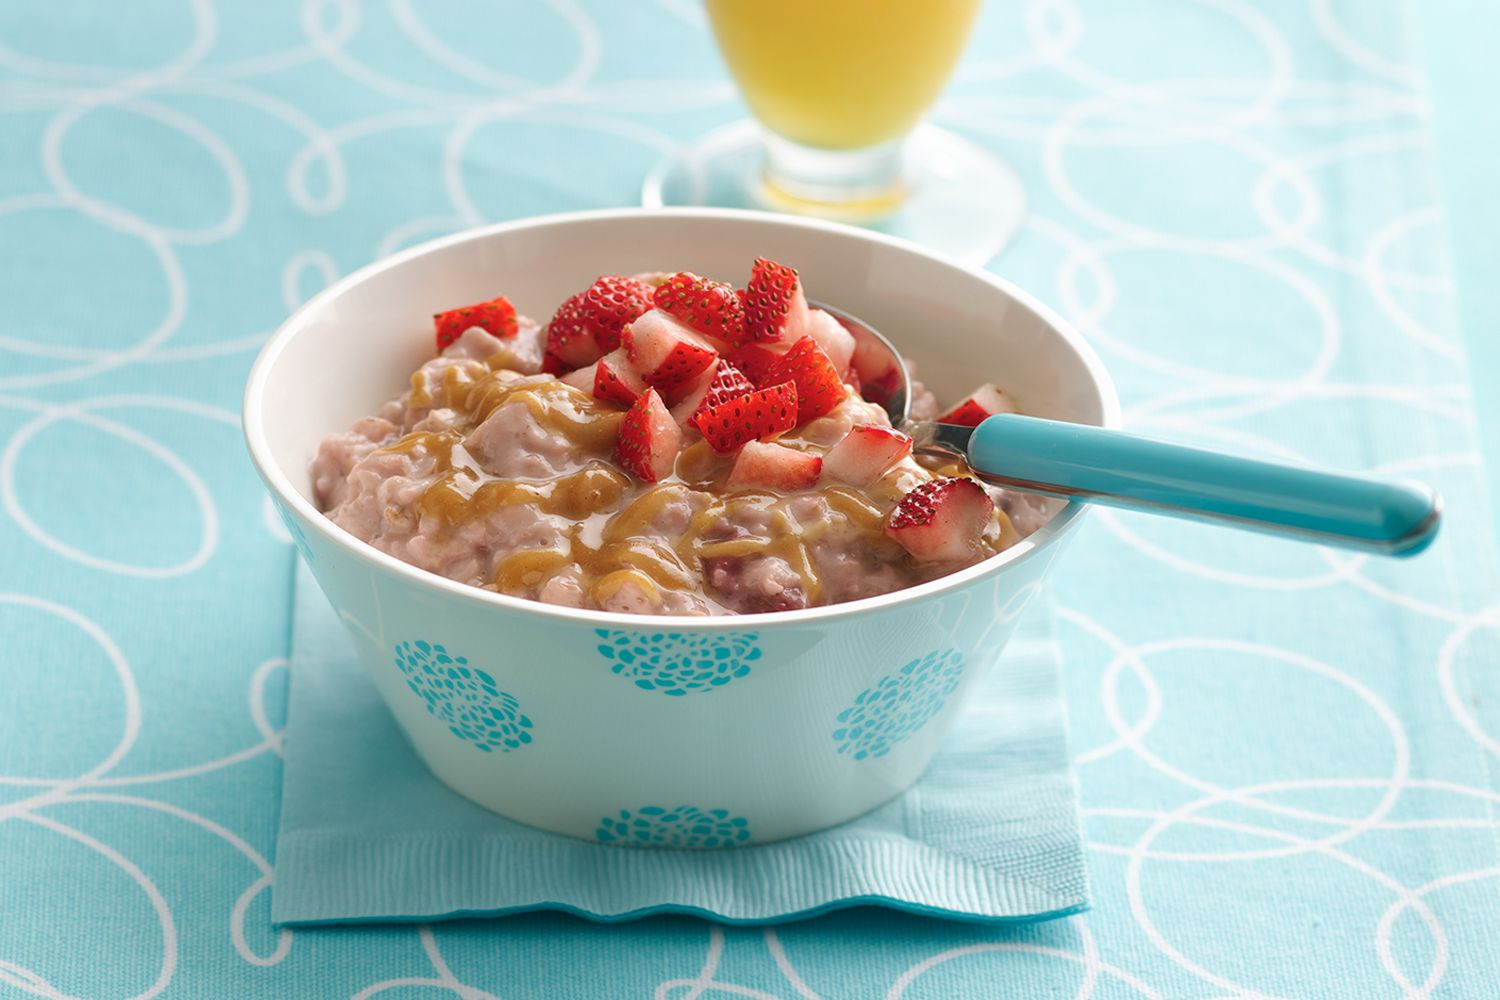 How to Make a Big Diet-Friendly Bowl of Oatmeal